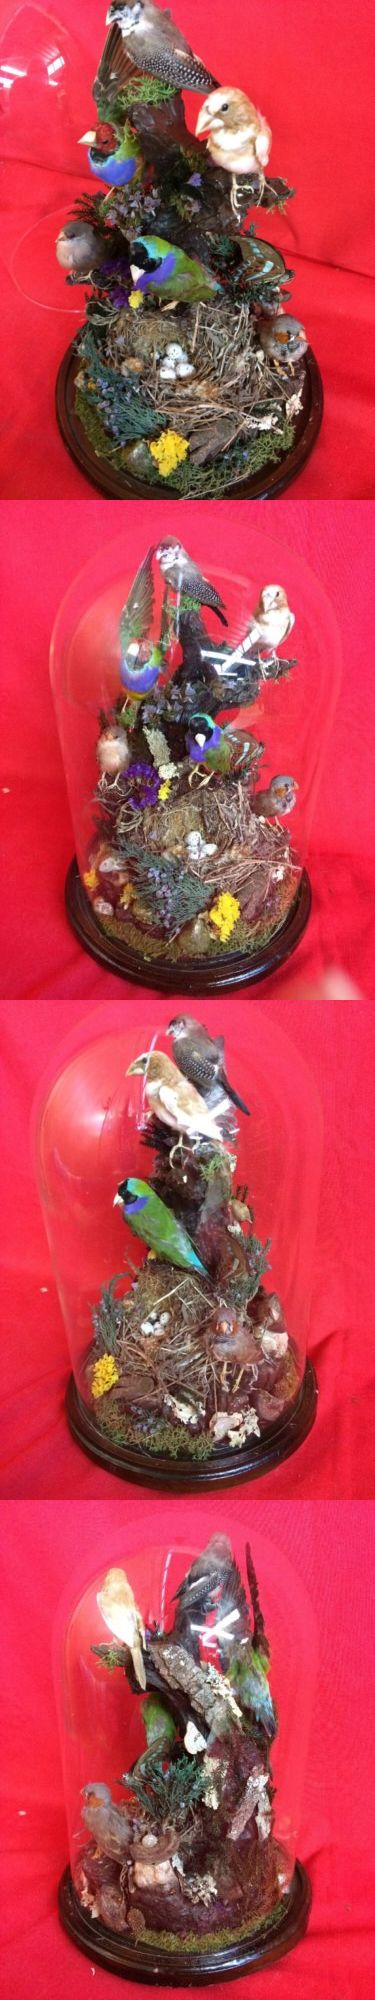 Birds 71123: Sale*Taxidermy Antique Victorian Style 6 Finch Large Glass Dome Display Bird -> BUY IT NOW ONLY: $519.99 on eBay!